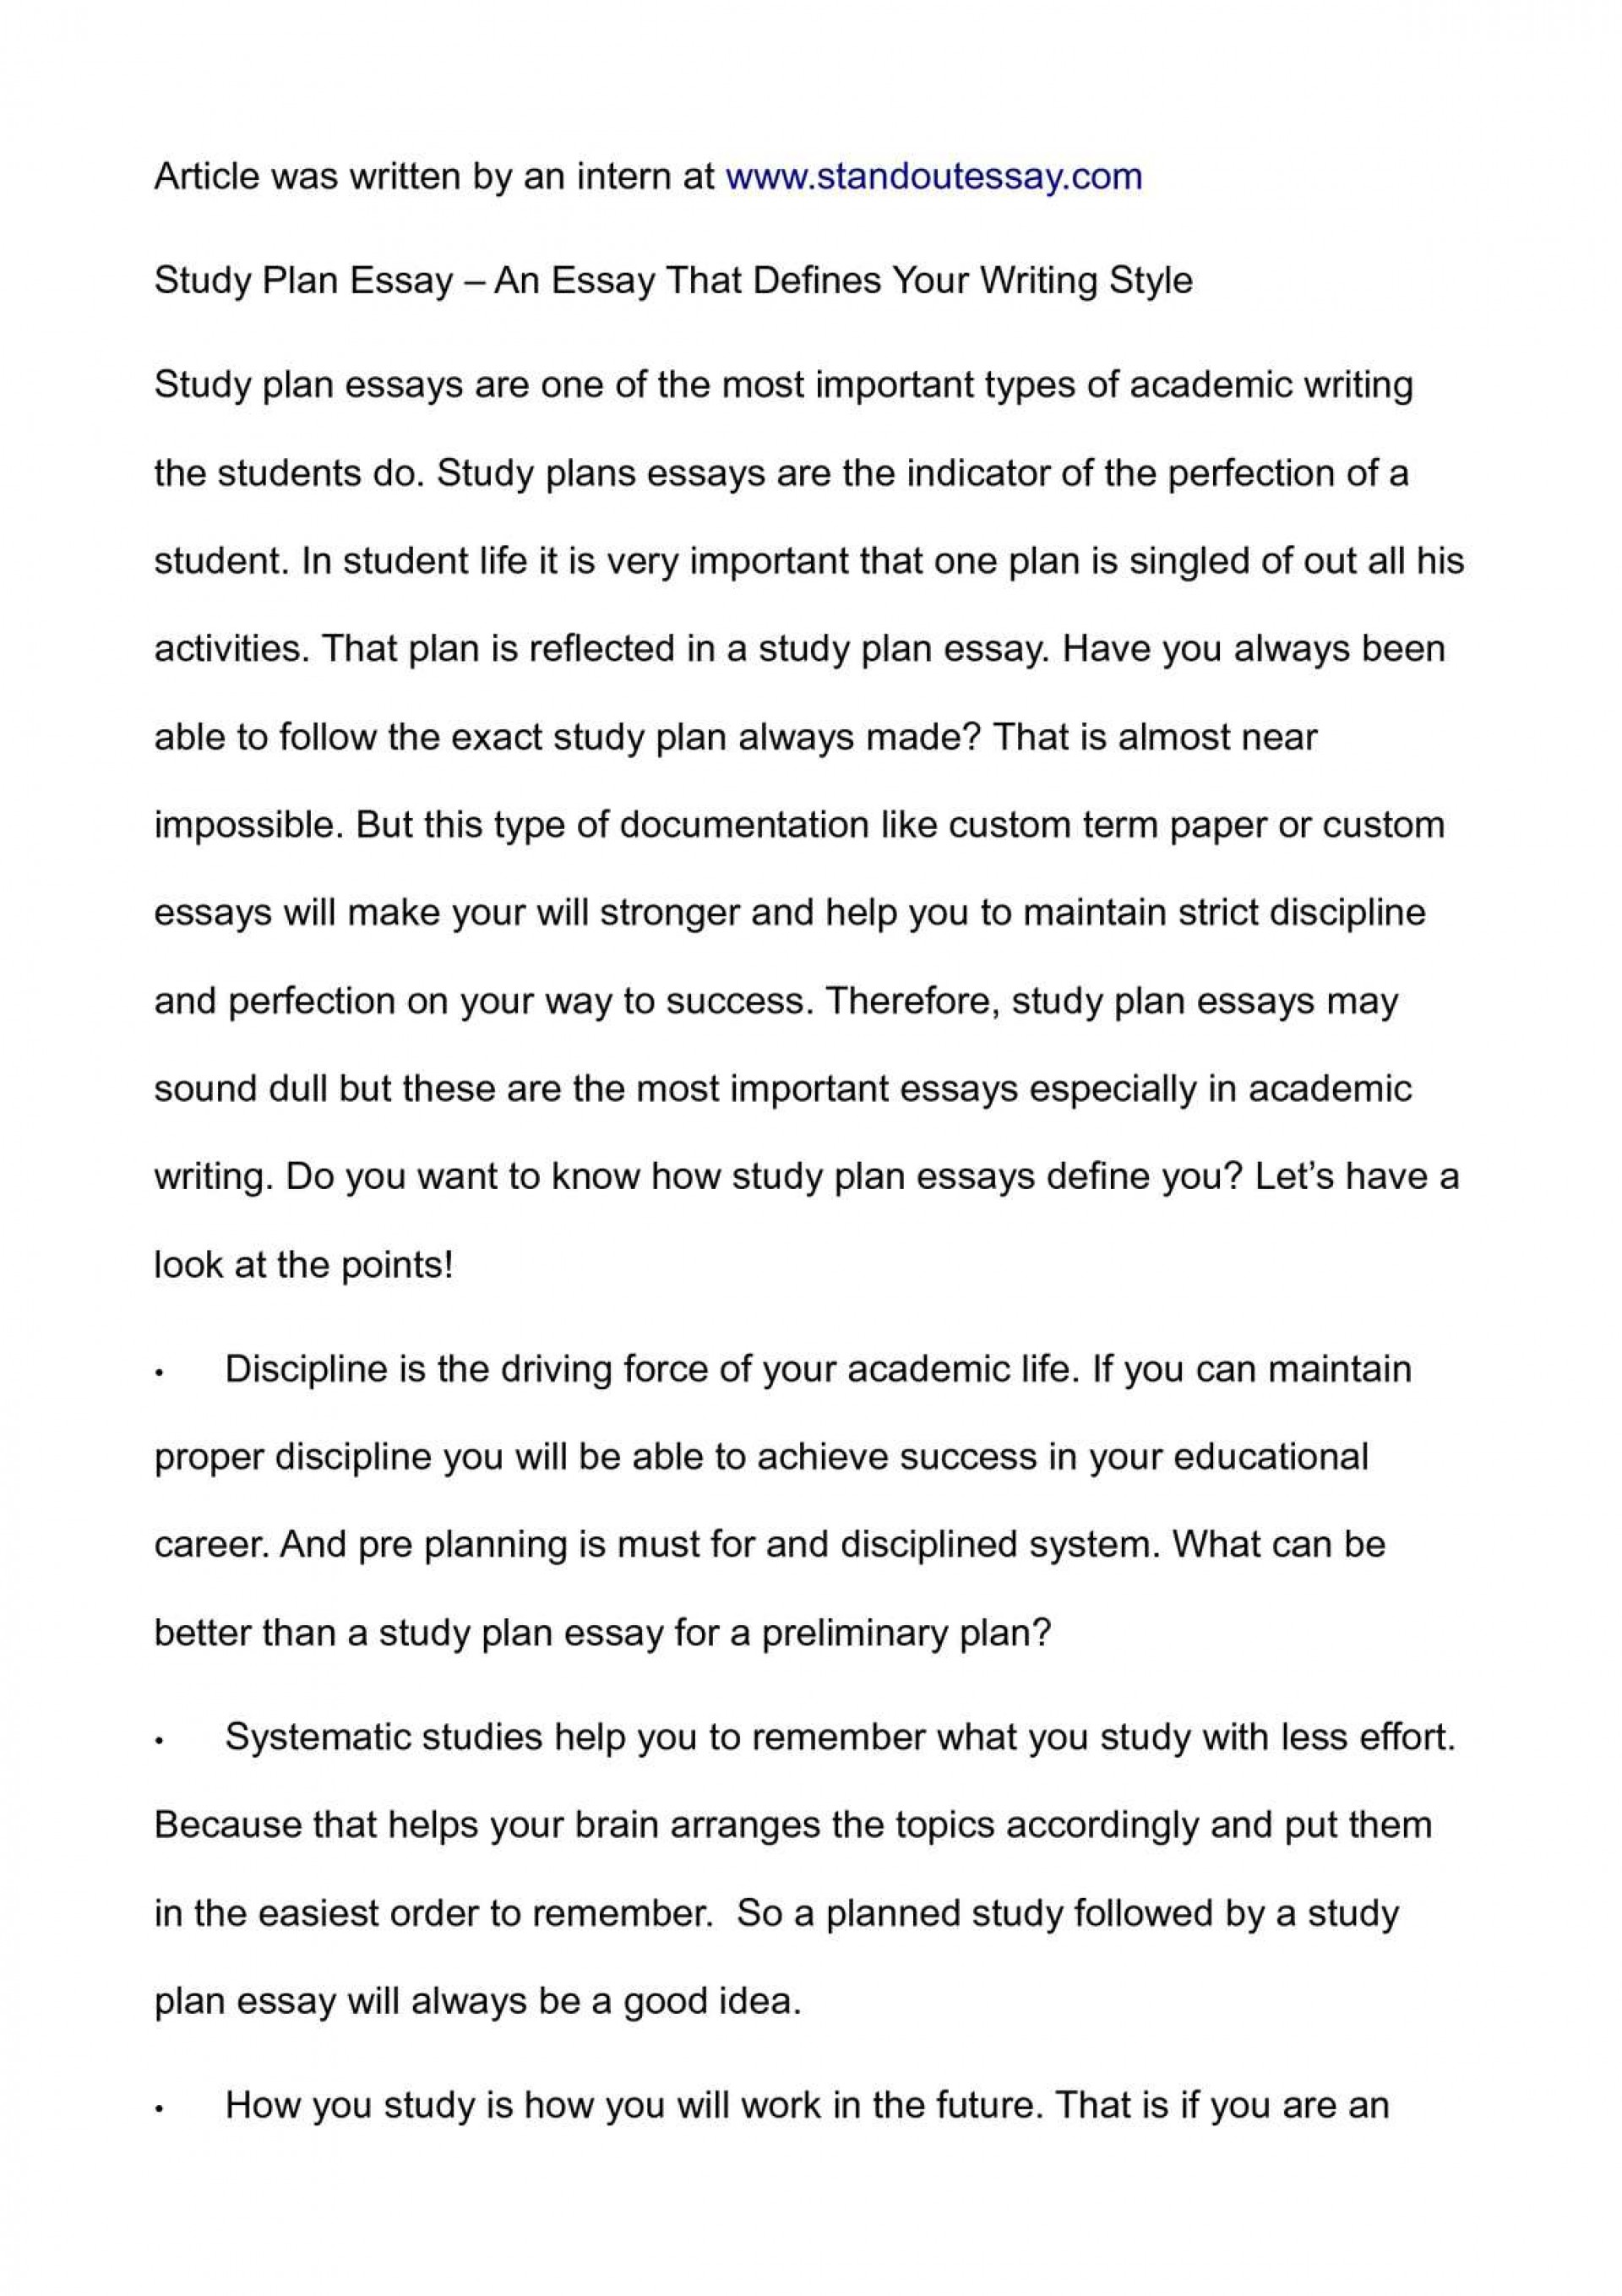 001 P1 Success Essay Wonderful Outline Formula In Hindi Education Is Key To 1920